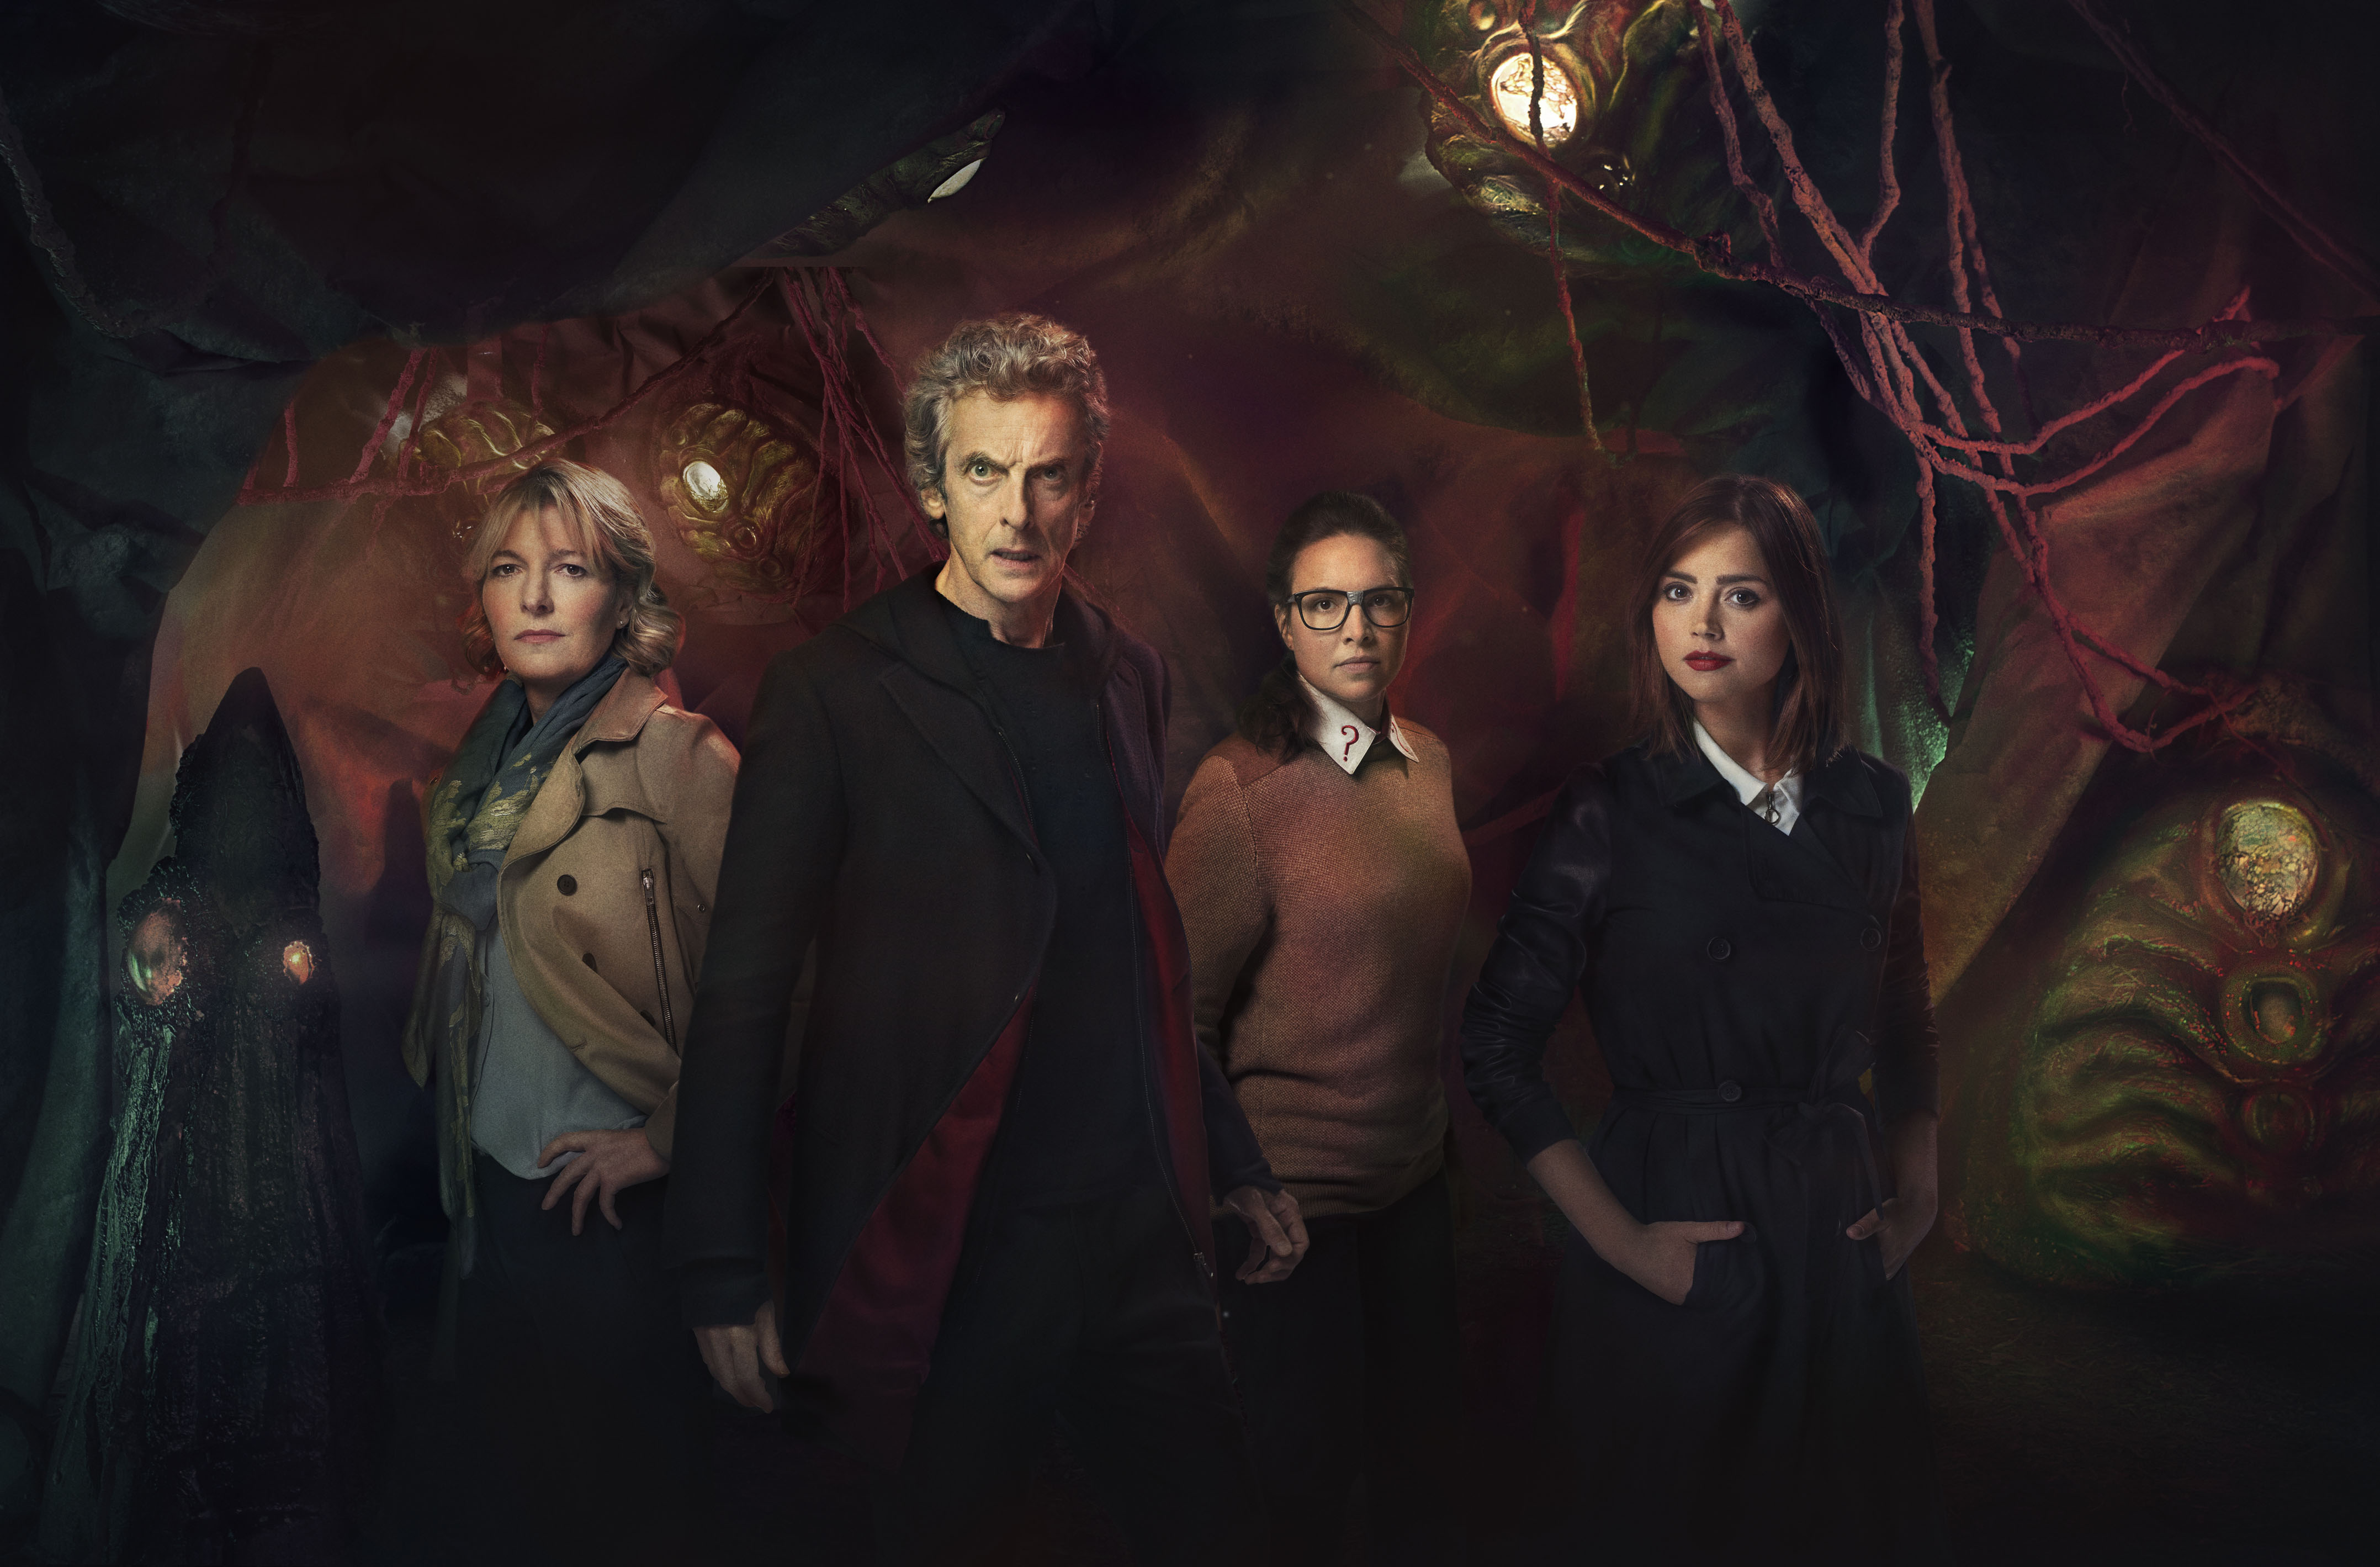 Doctor Who - Episode 9.08 - The Zygon Inversion - Promo Pics